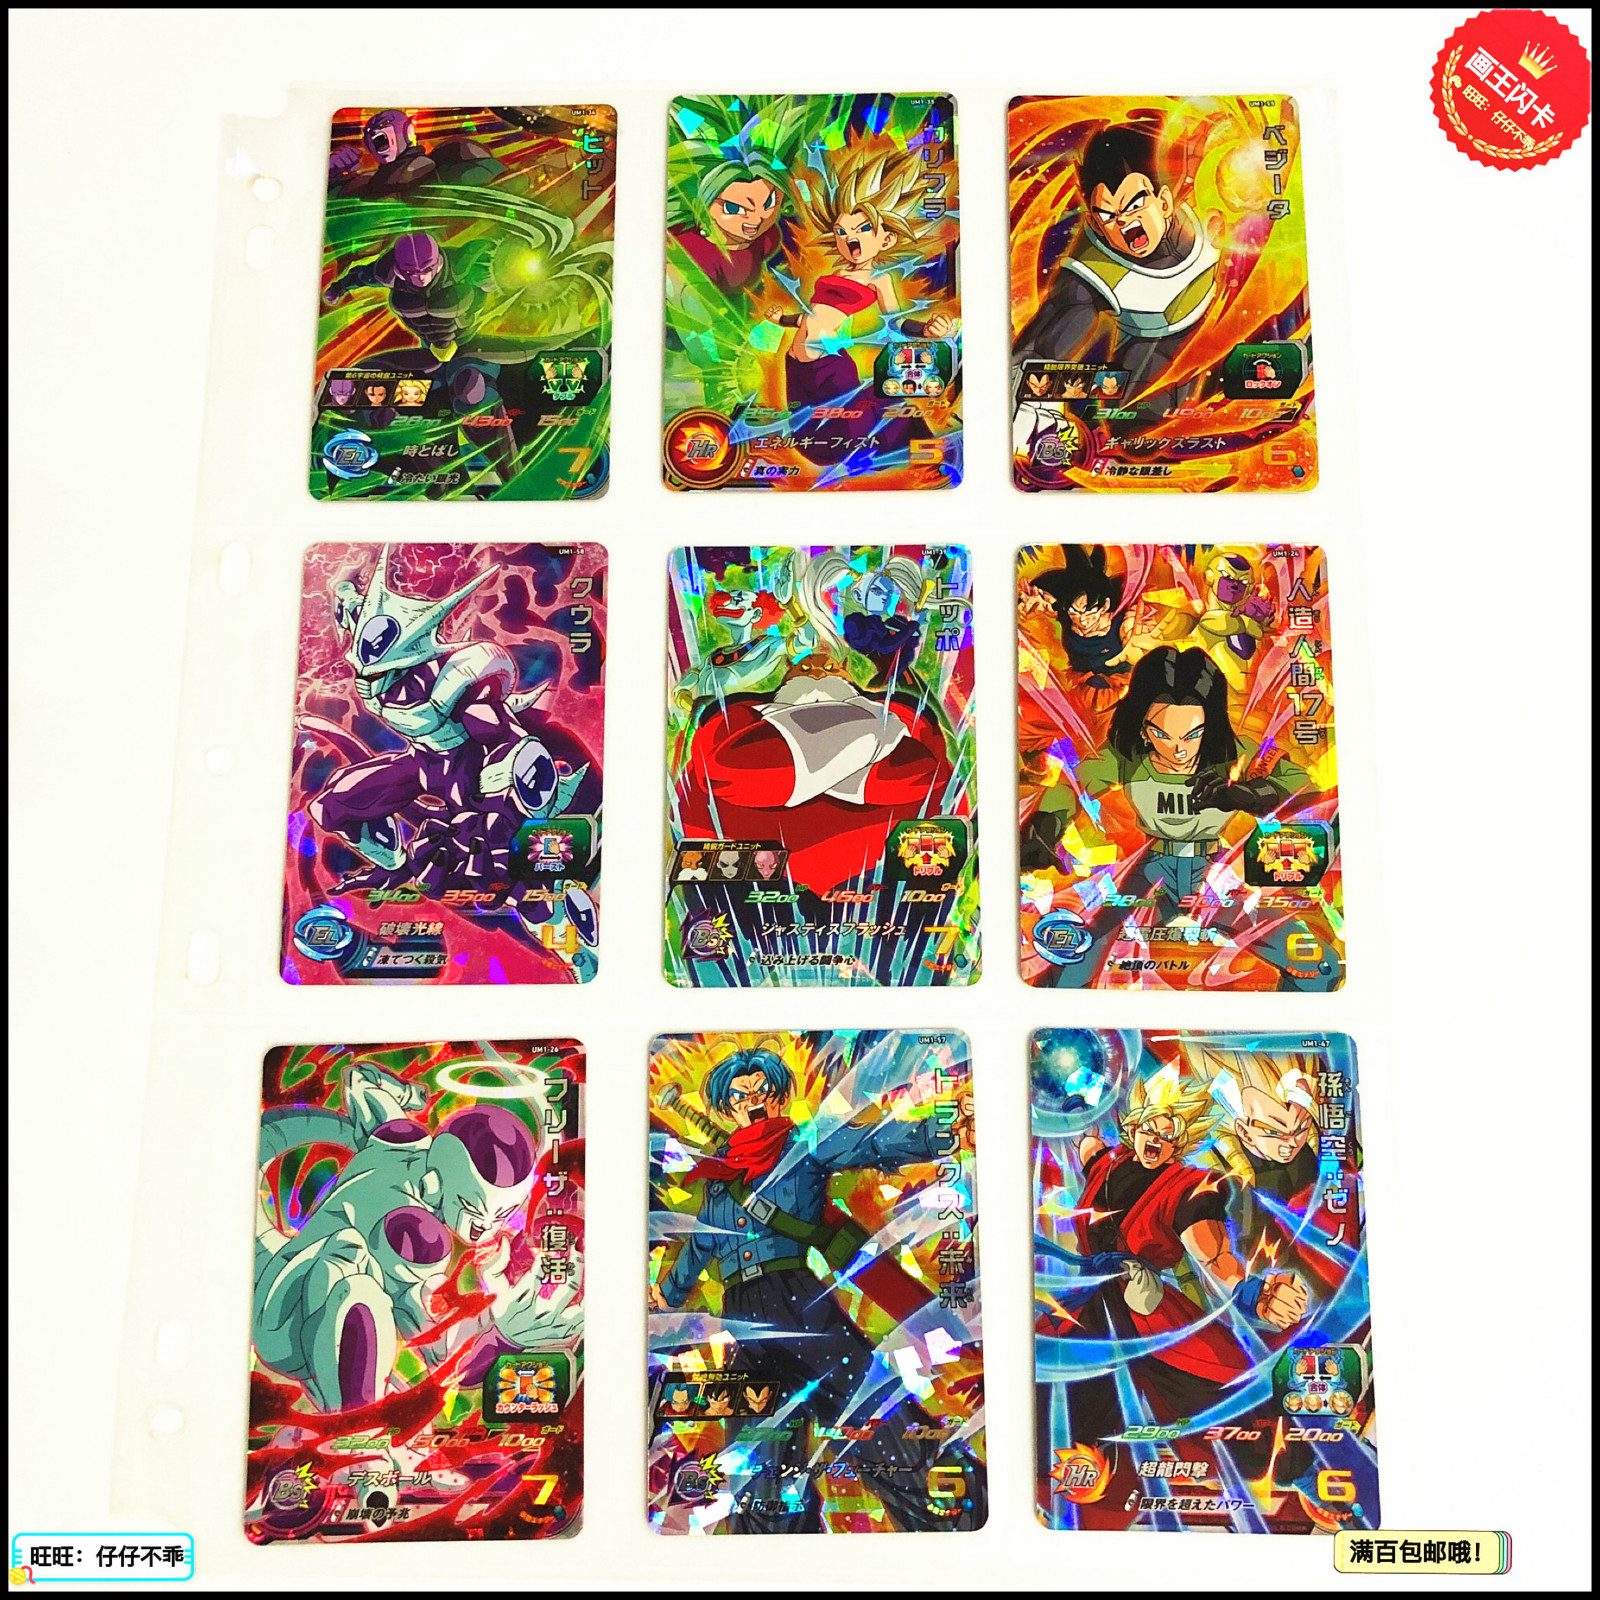 9pcs Japan Original Dragon Ball Hero Card SR Flash UM1 3 Stars Super Goku Toys Hobbies Collectibles Game Collection Anime Cards